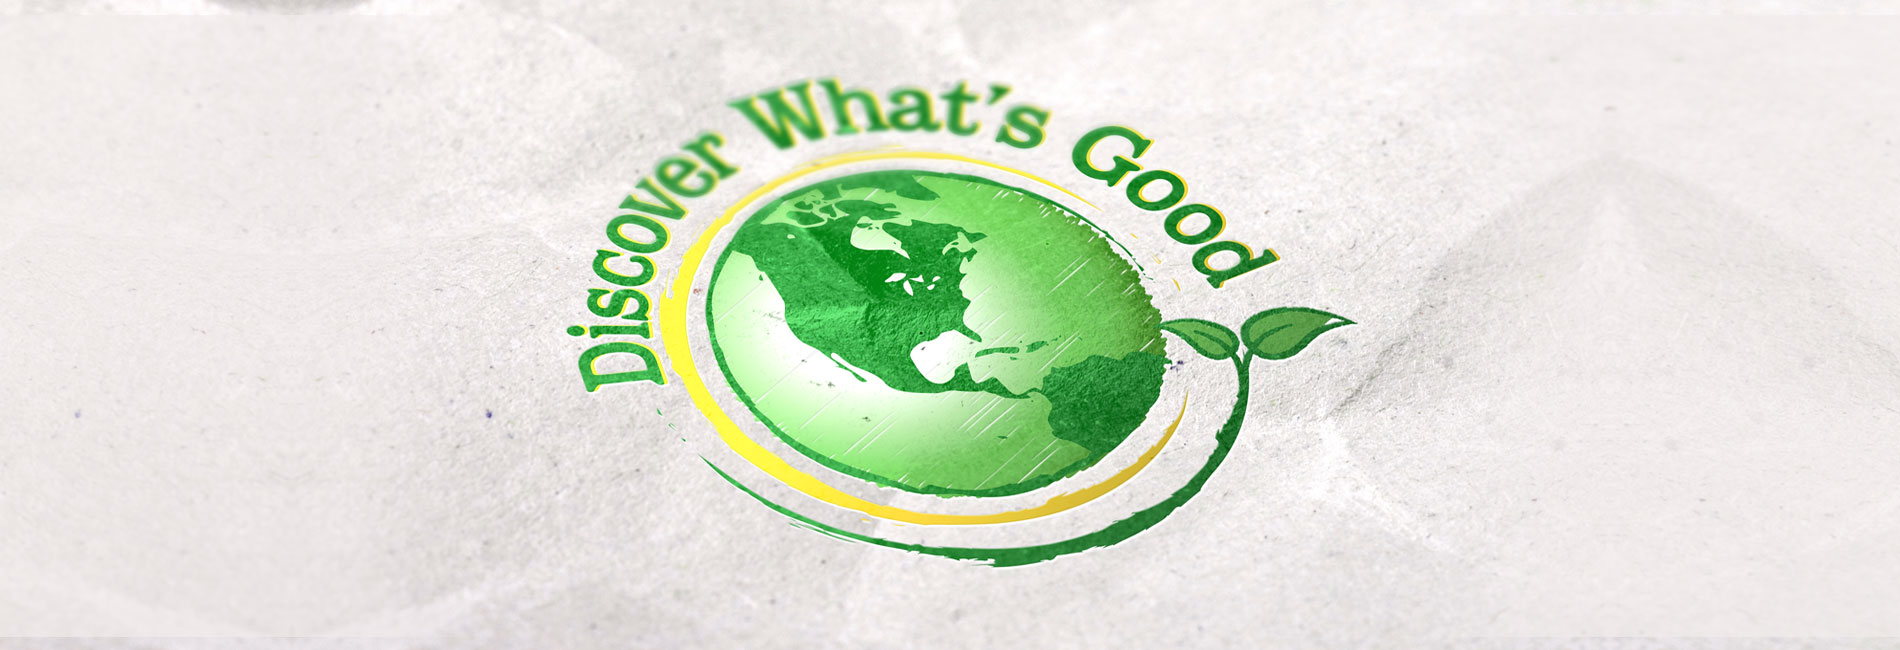 discover what's good logo